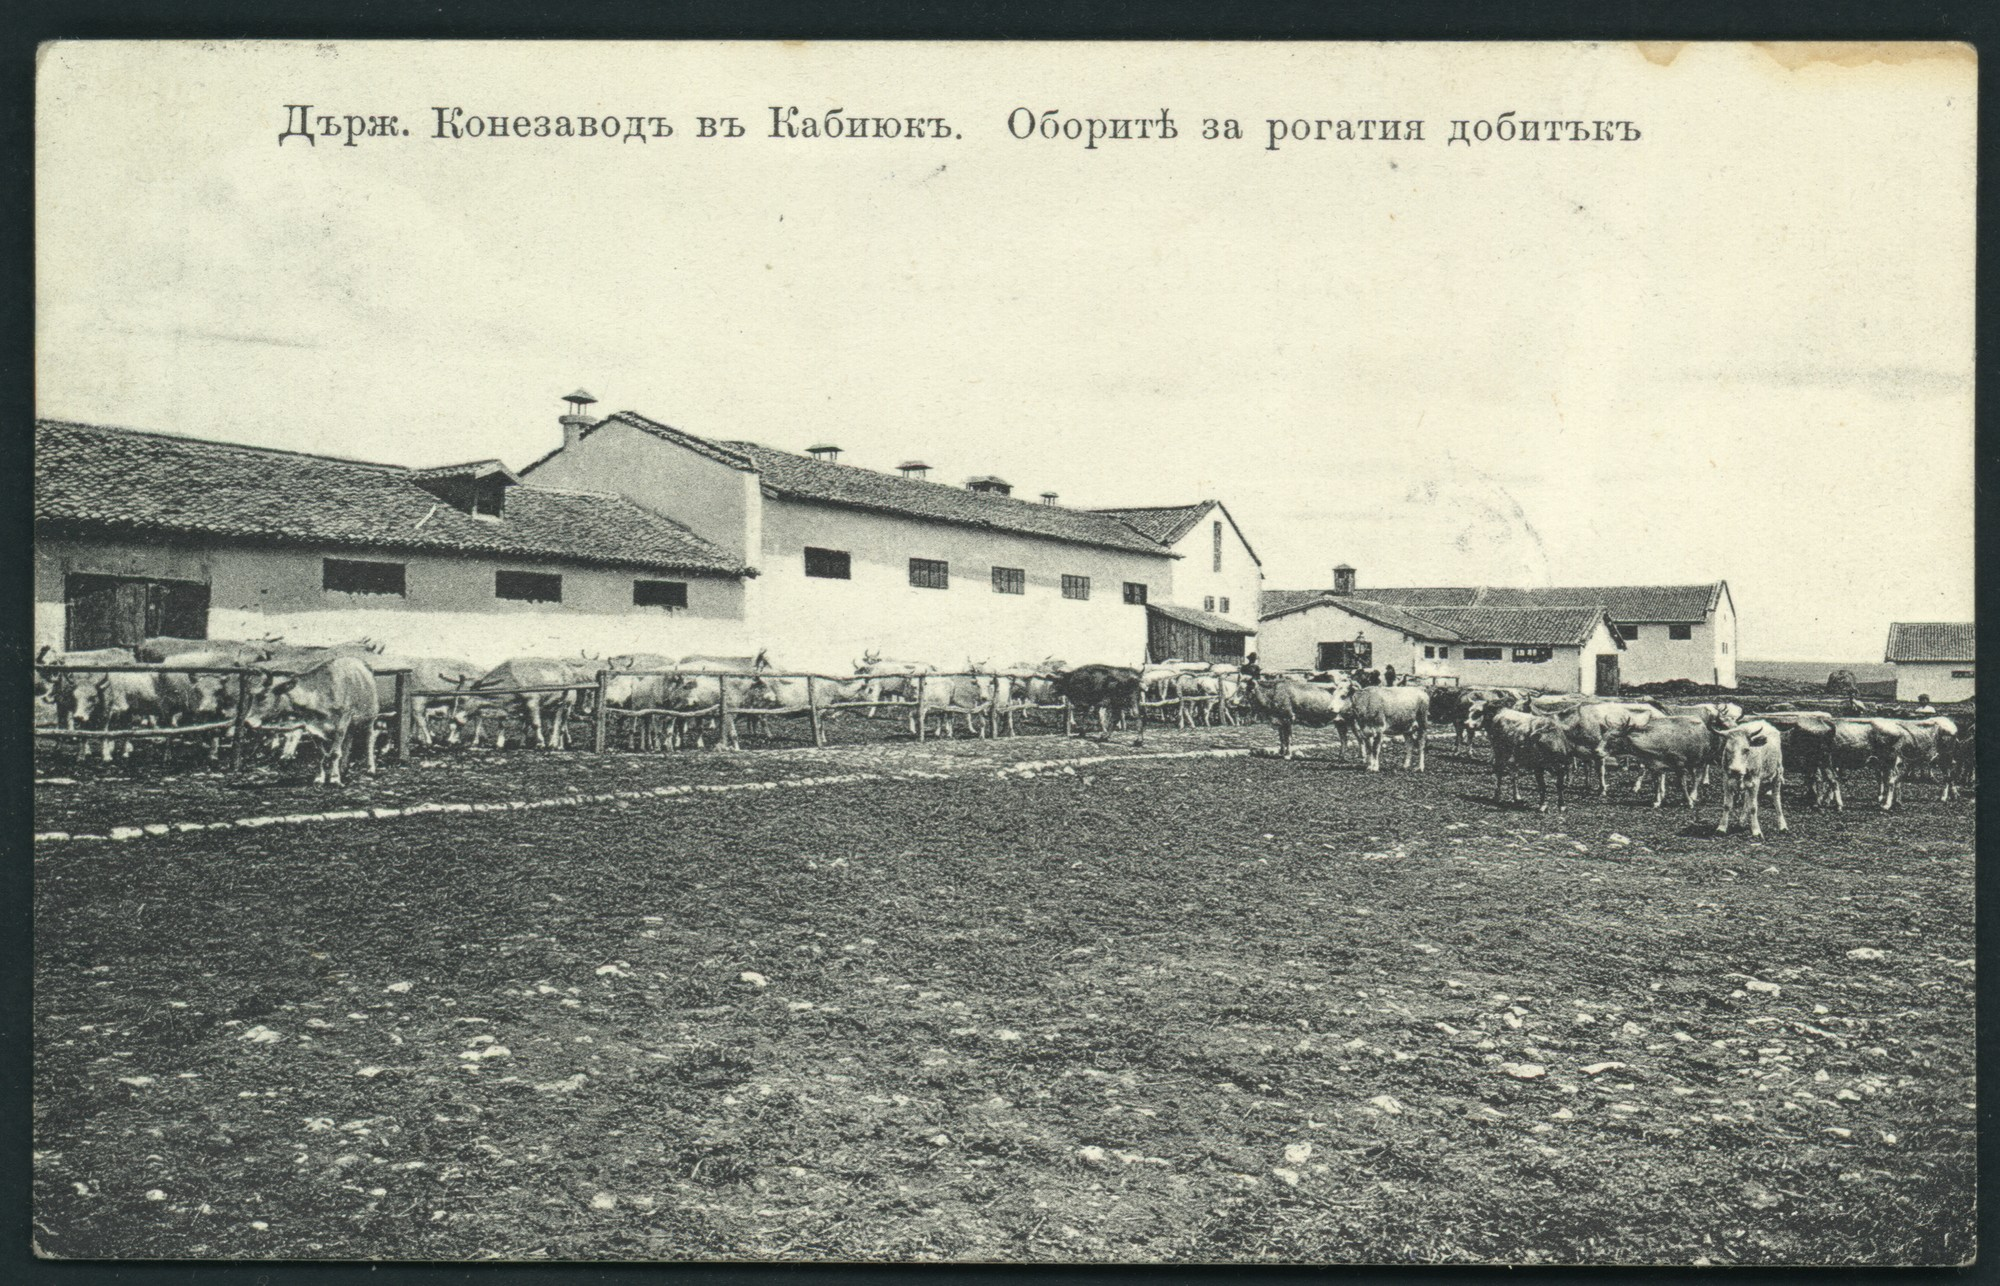 """State Horse Stud in Kabiyuk. The horned cattle stable"", © St. Cyril and St. Methodius National Library"